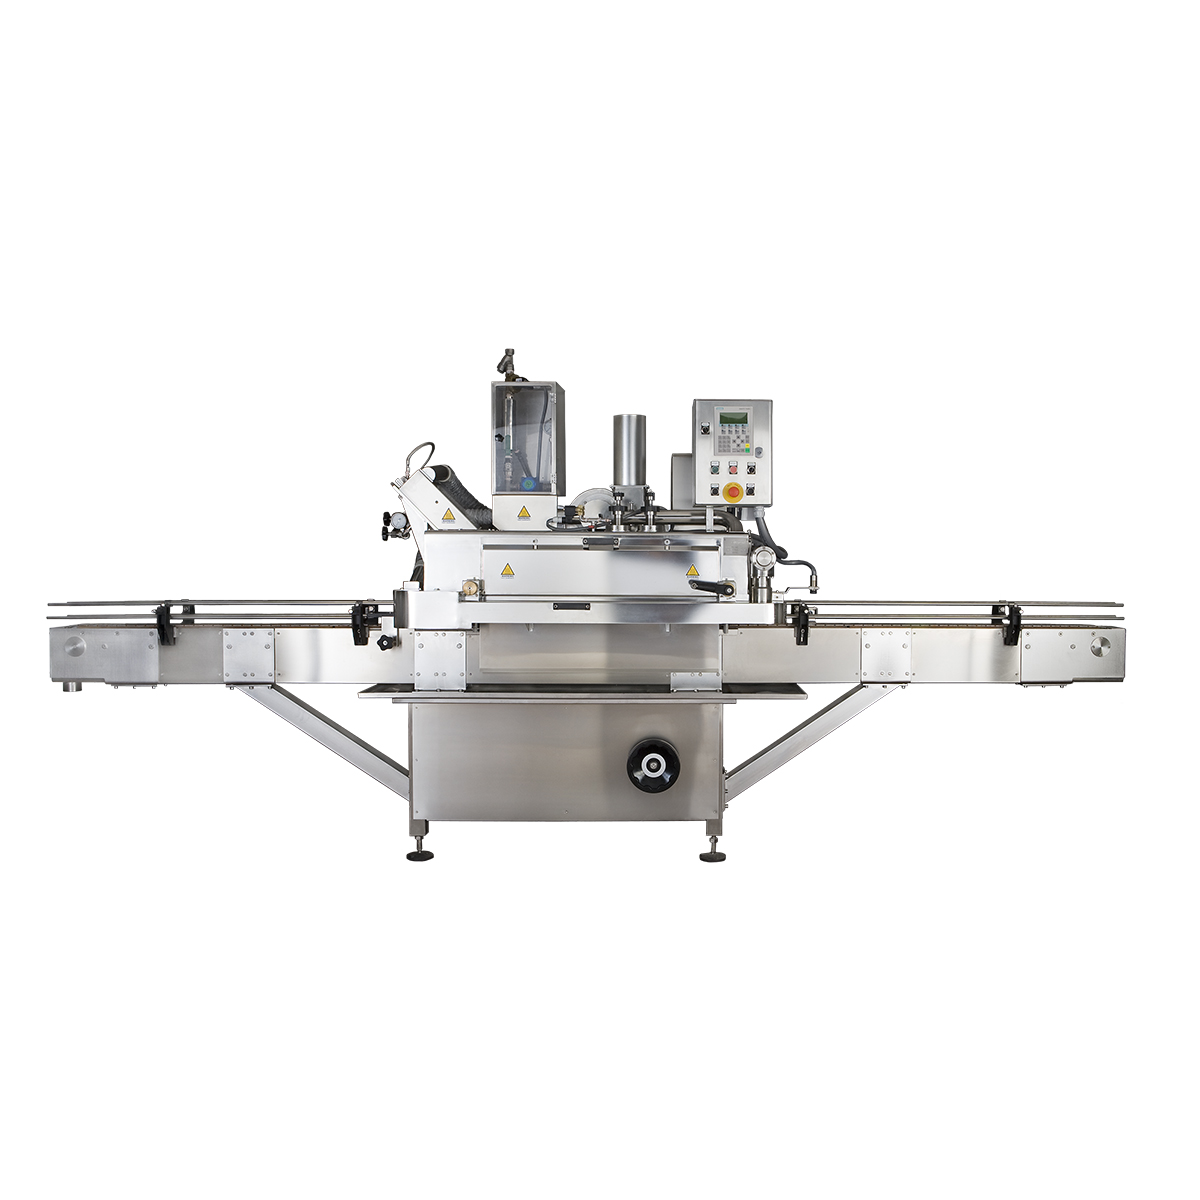 Food capping machines for food and beverage industry - Capsulatrice lineare automatica per invasettamento alimenti e bevande